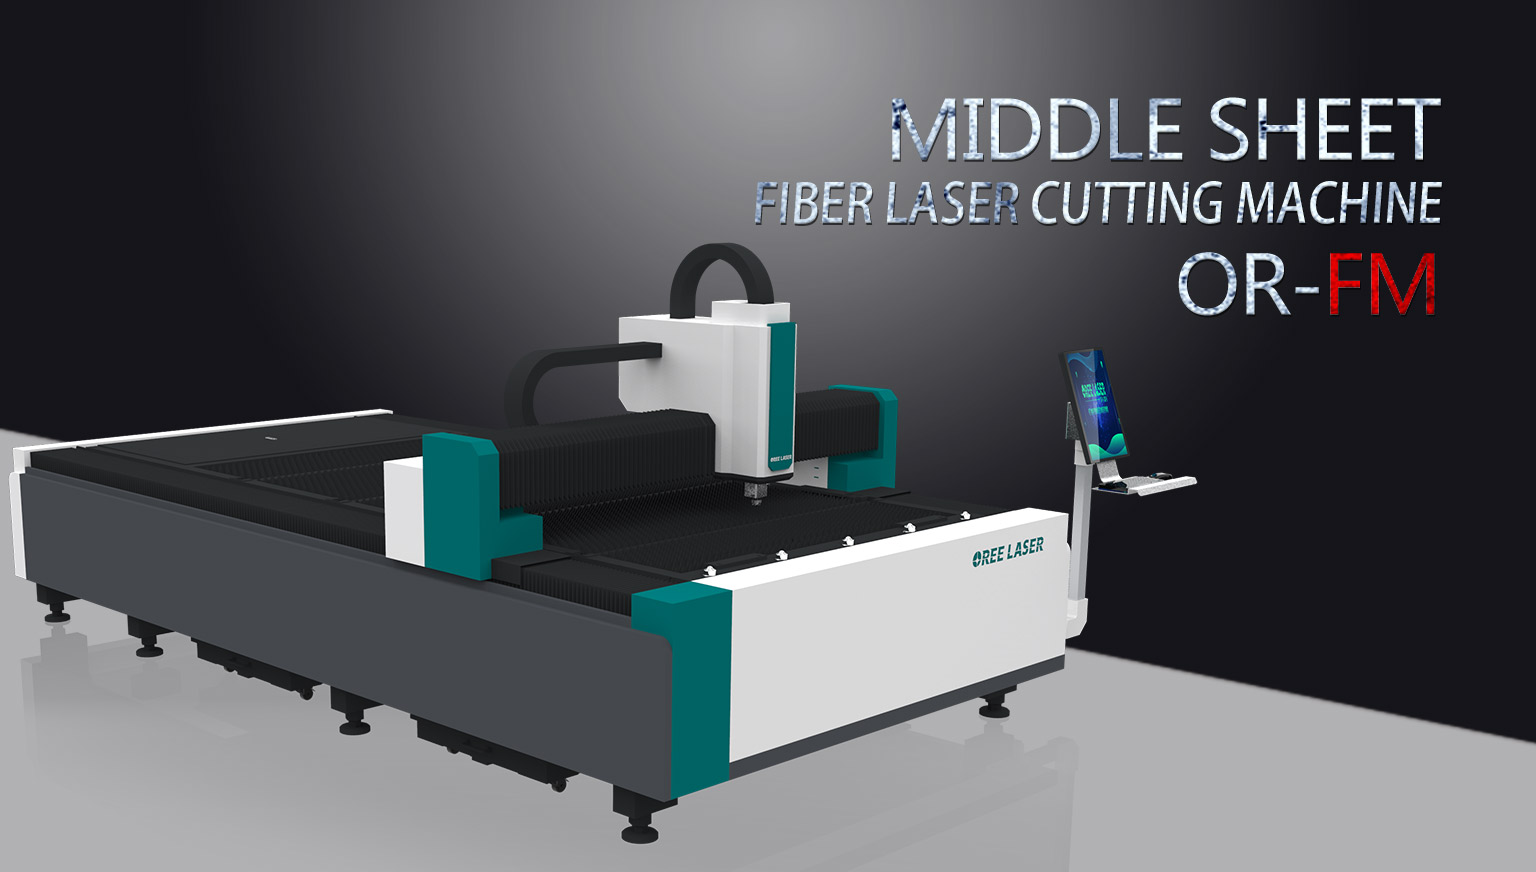 Middle sheet Fiber Laser Cutting Machine